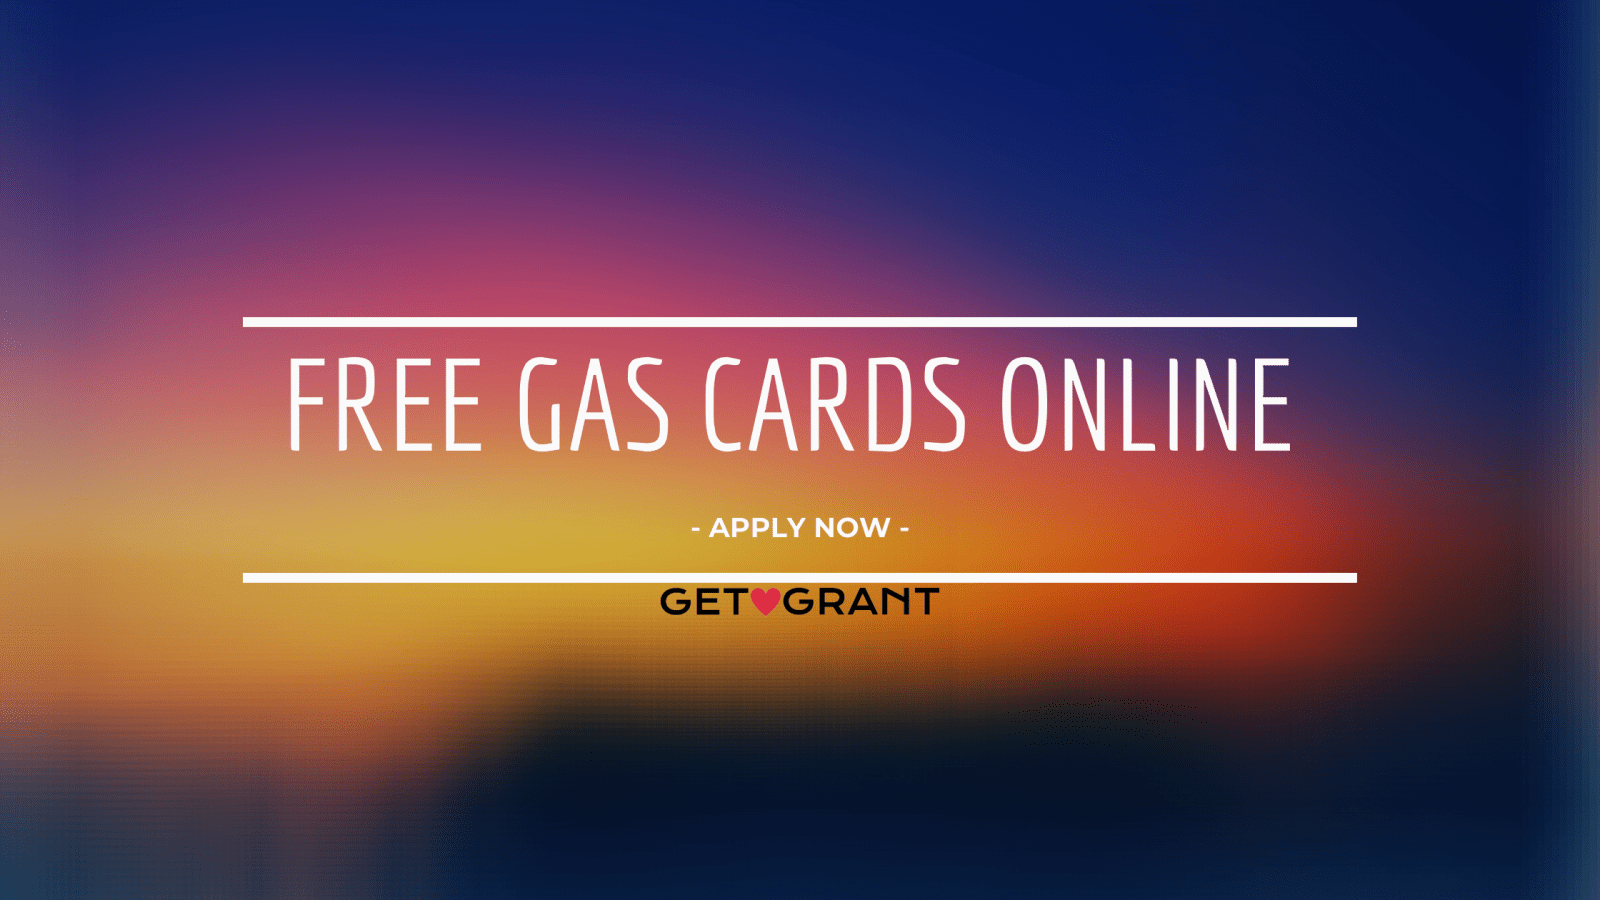 Free Gas Cards Online